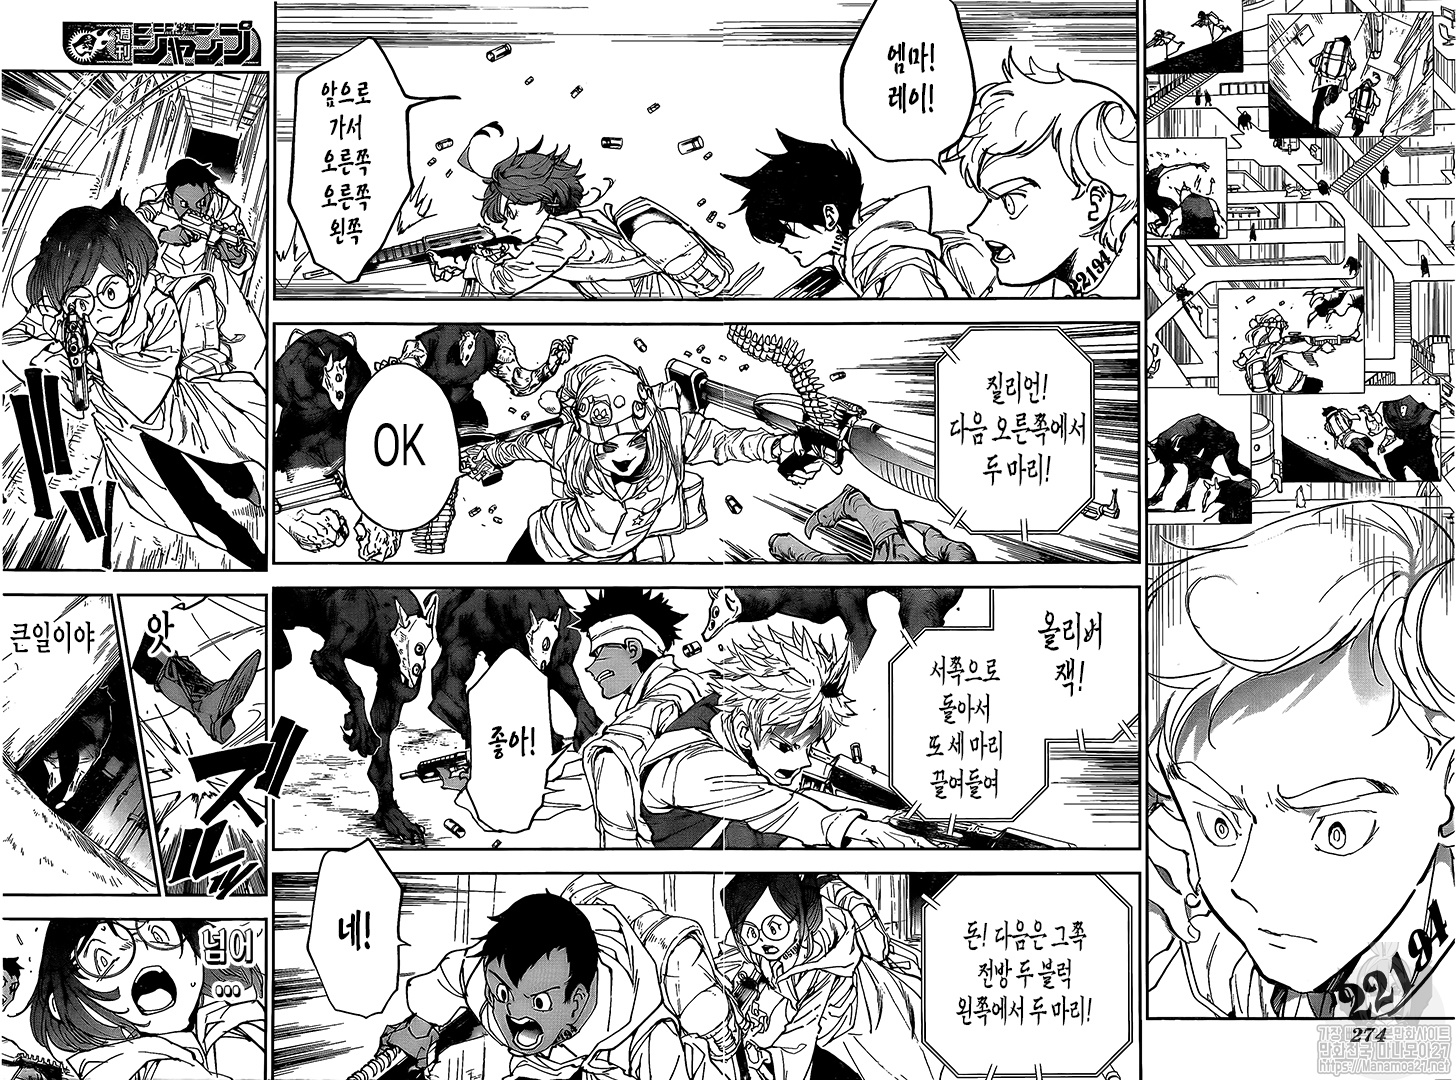 The Promised Neverland 167-RAWKR-[RAW][เกาหลี!!]